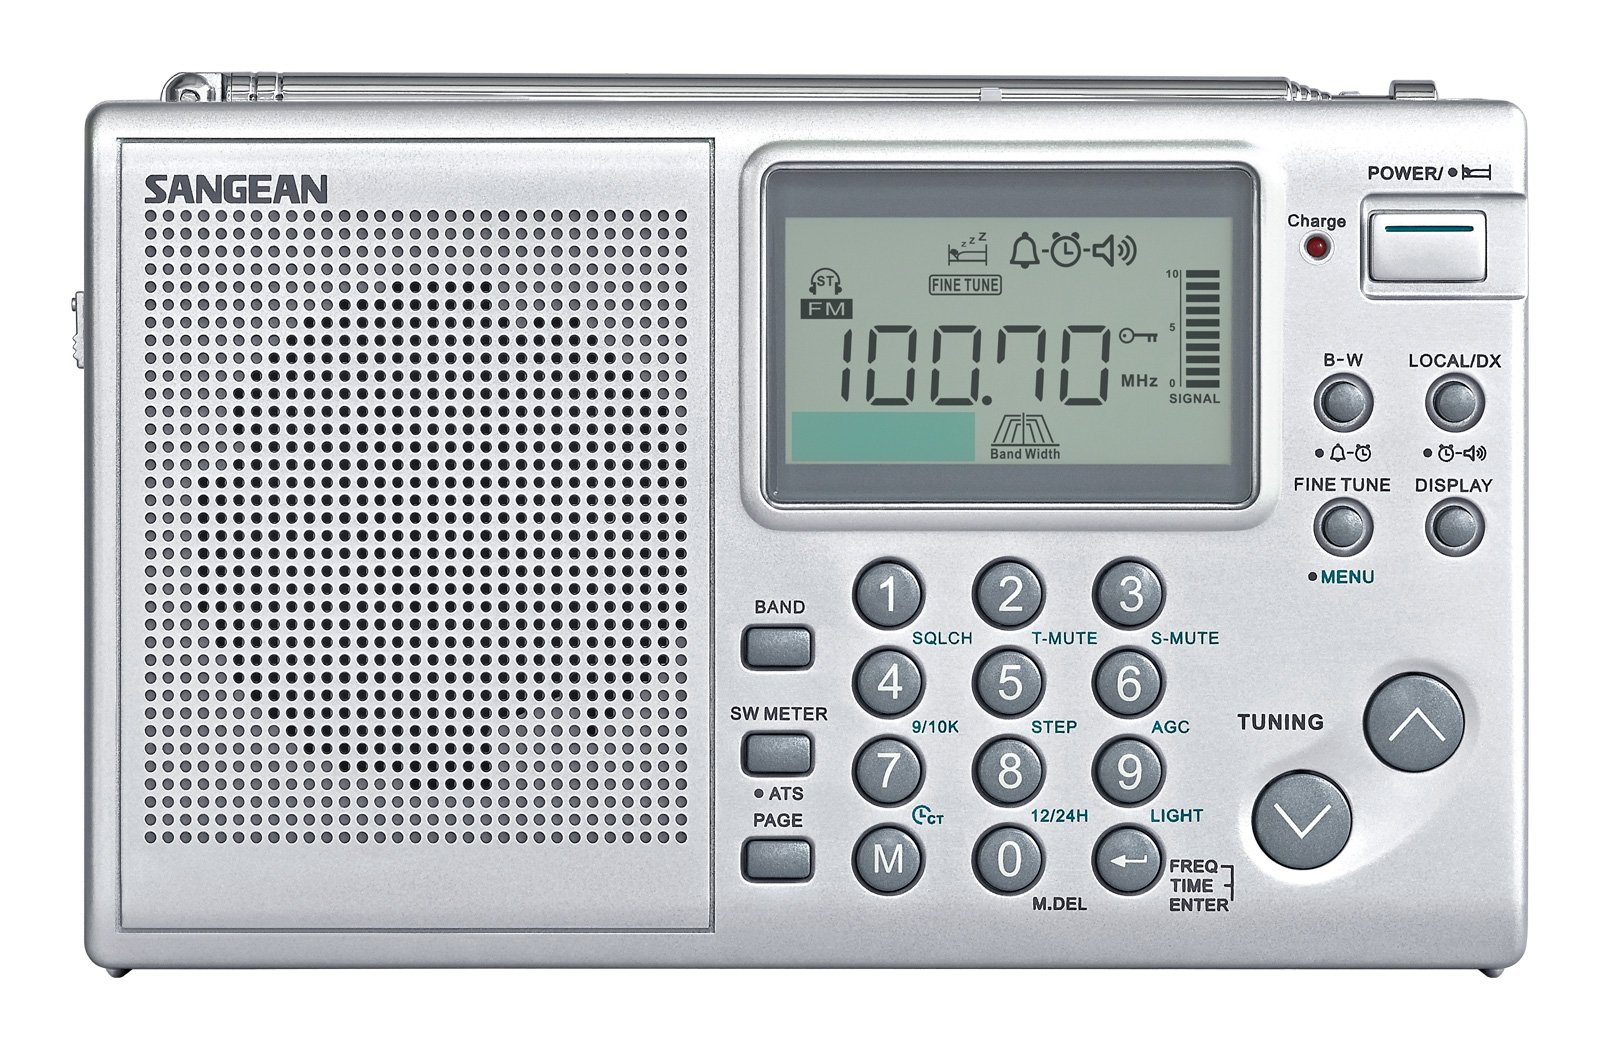 Sangean All in One AM/FM/SW Professional Digital Multi-Band World Receiver Radio with Large Easy to Read Backlit LCD Display